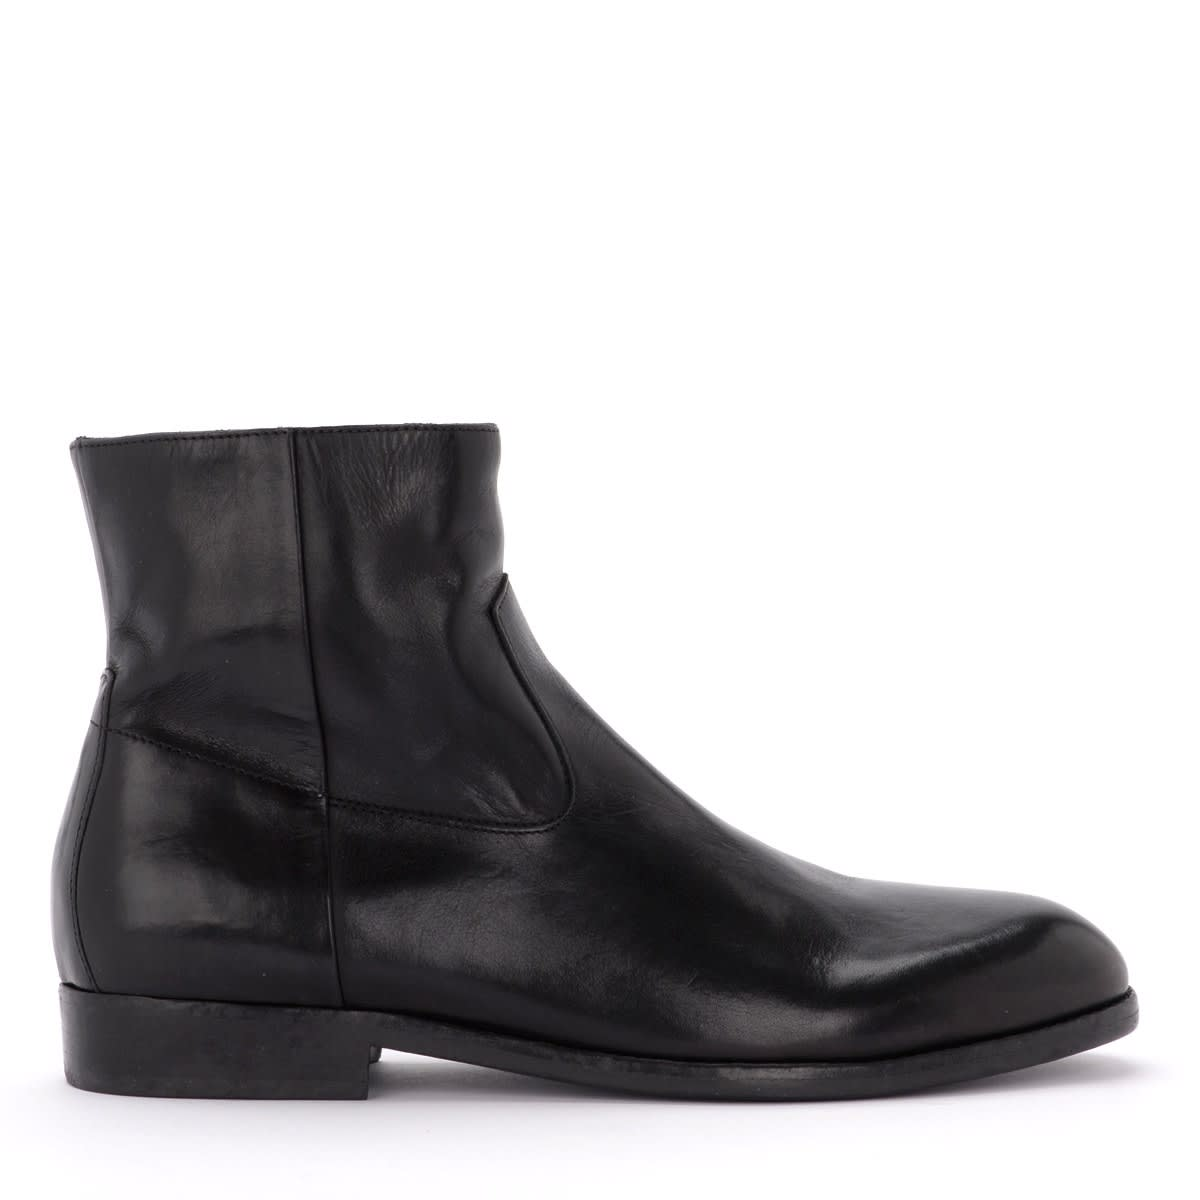 Buttero Floyd Boot In Black Leather With Side Zip Closure